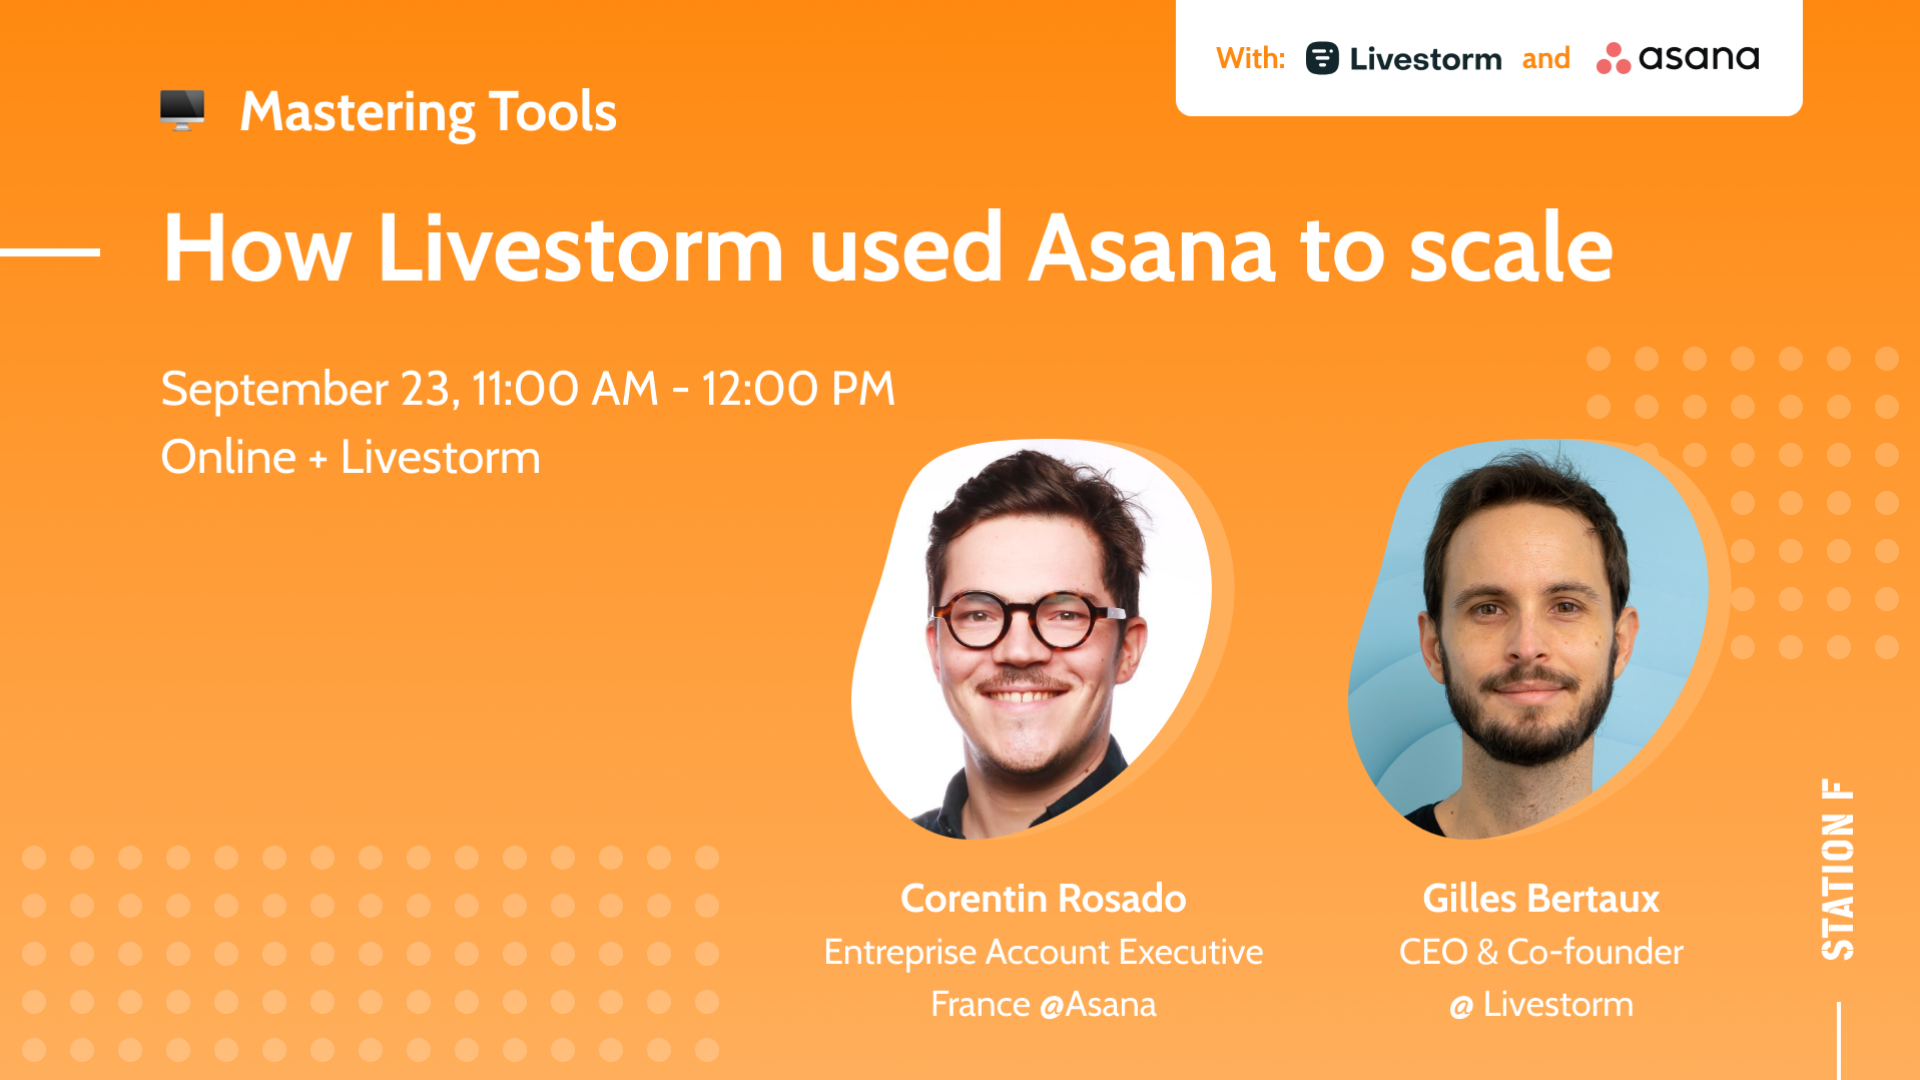 Thumbnail for event How Livestorm used Asana to scale